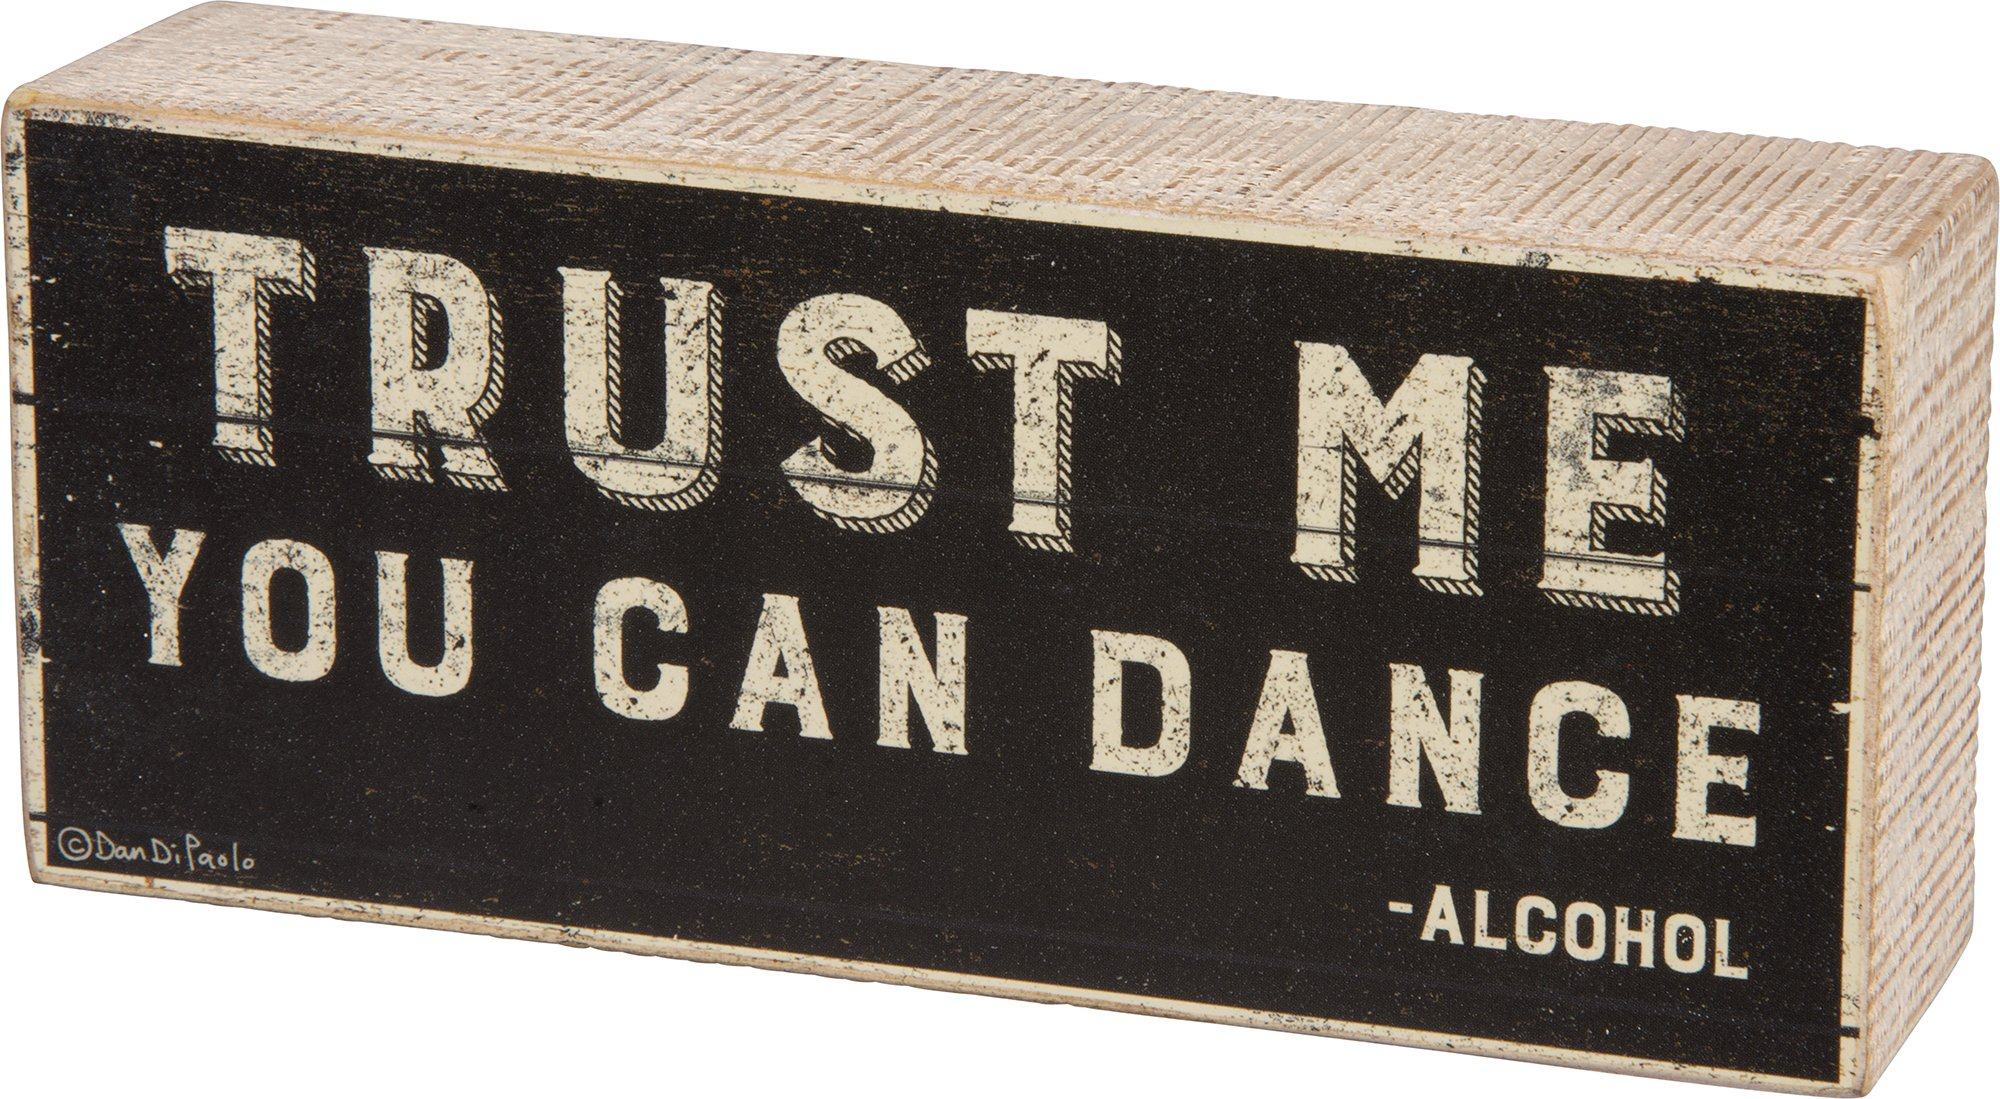 Heart of America Trust Me You Can Dance -Alcohol Box Sign,black, white,7-in x 3-in